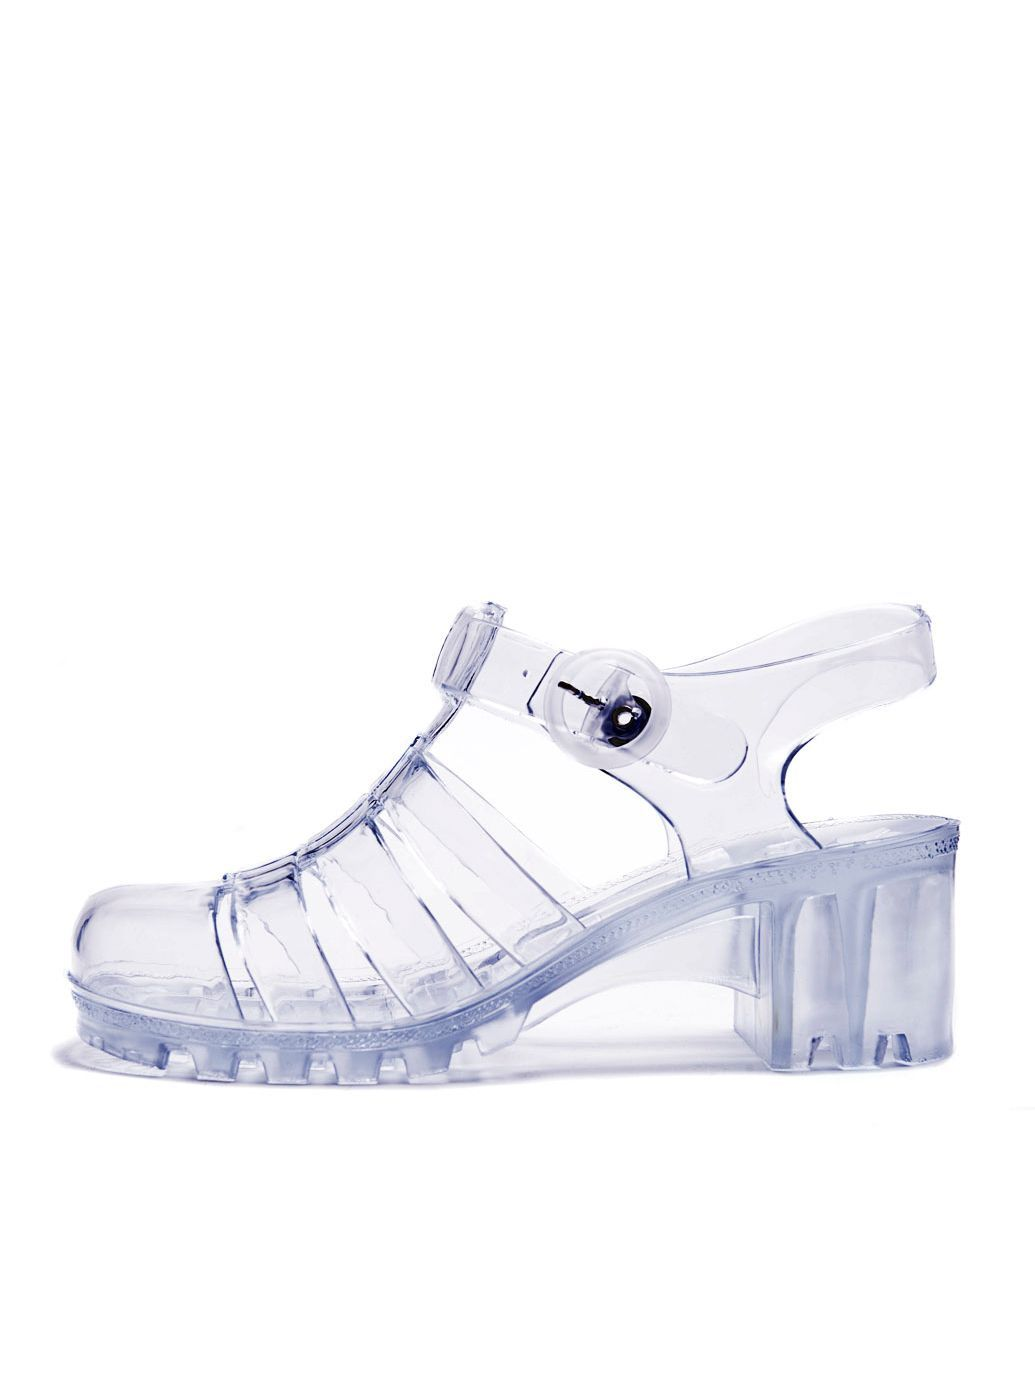 Black jelly sandals american apparel - 1000 Images About J R W On Pinterest Jeffrey Campbell Rain Shoes And Sophia Webster